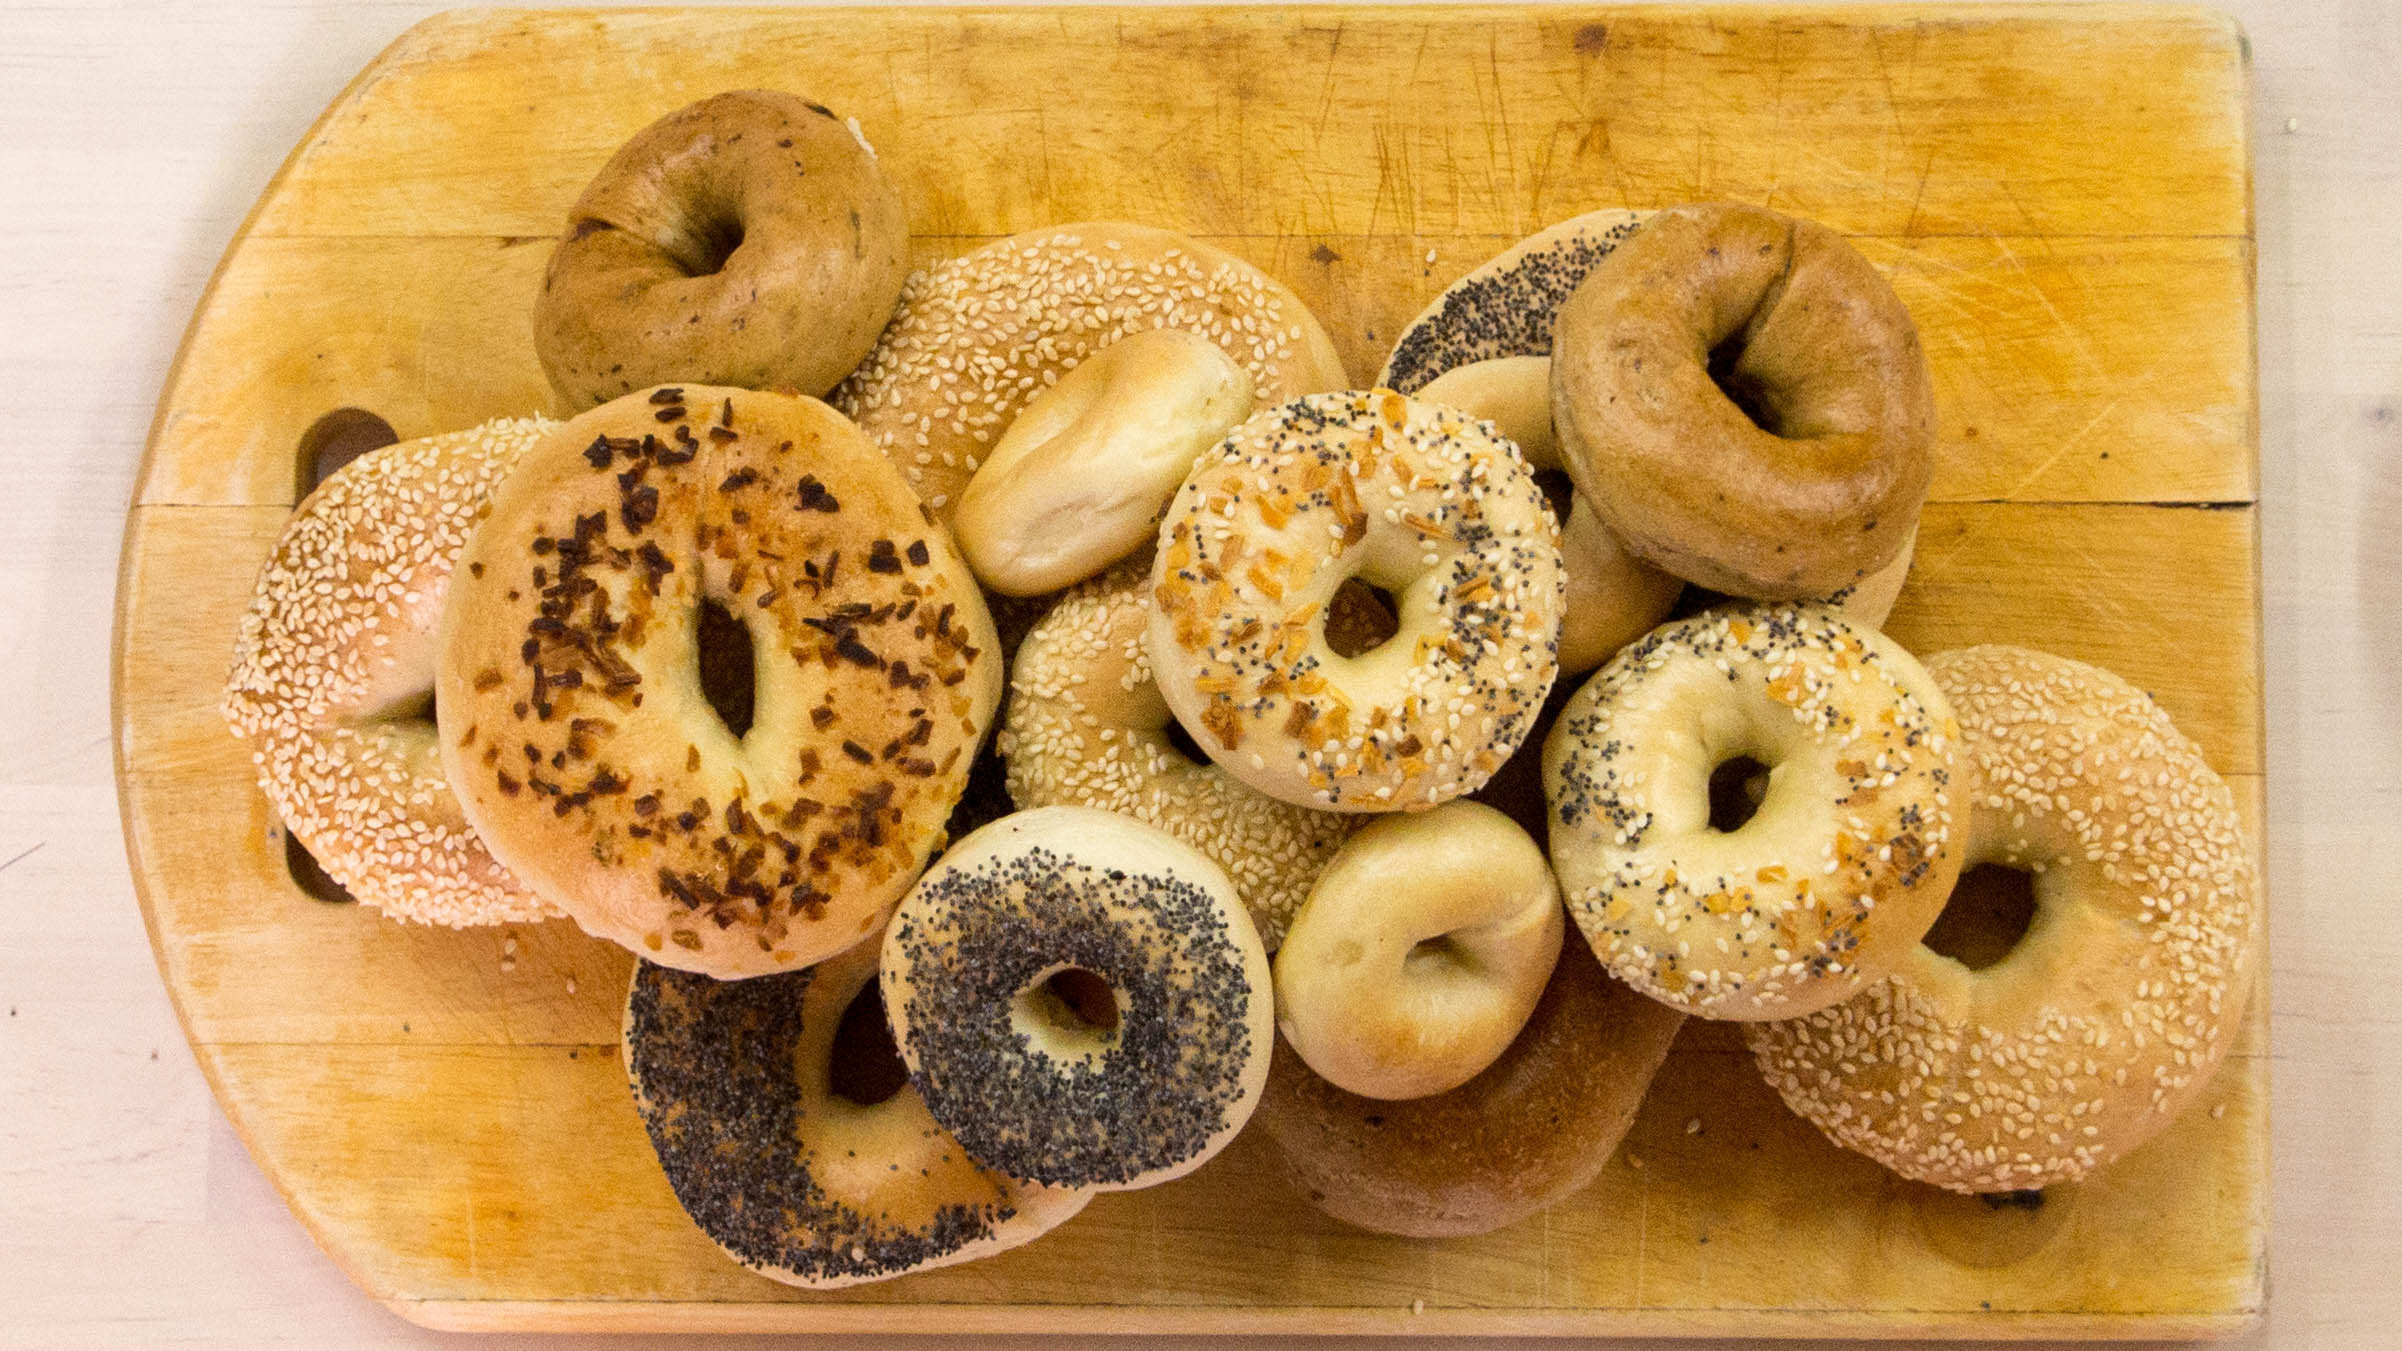 Schragels' bagels. Photo: Joseph Lam